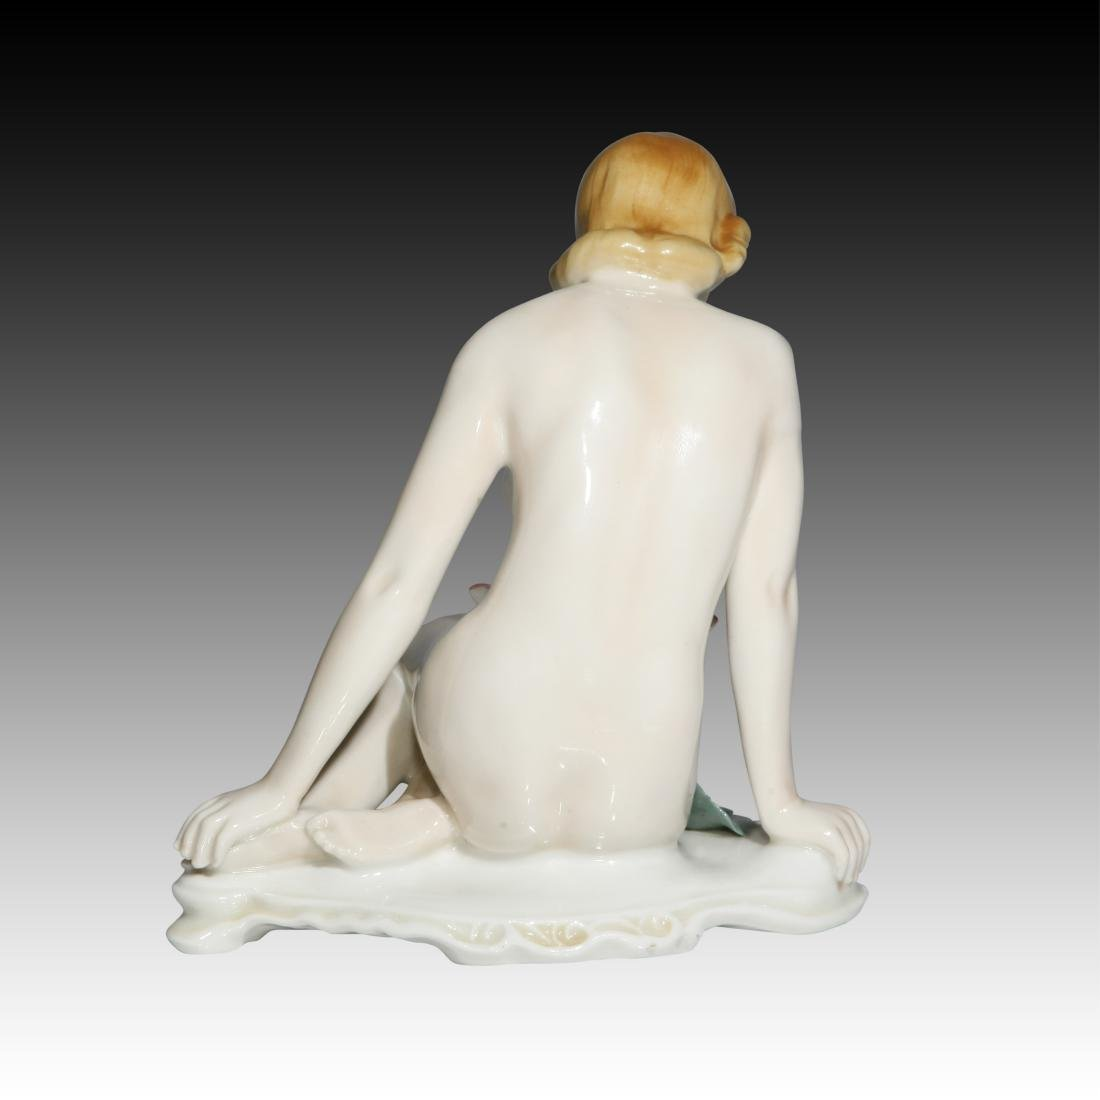 Karl Ens Female Nude with a Lotus Flower Figurine - 2